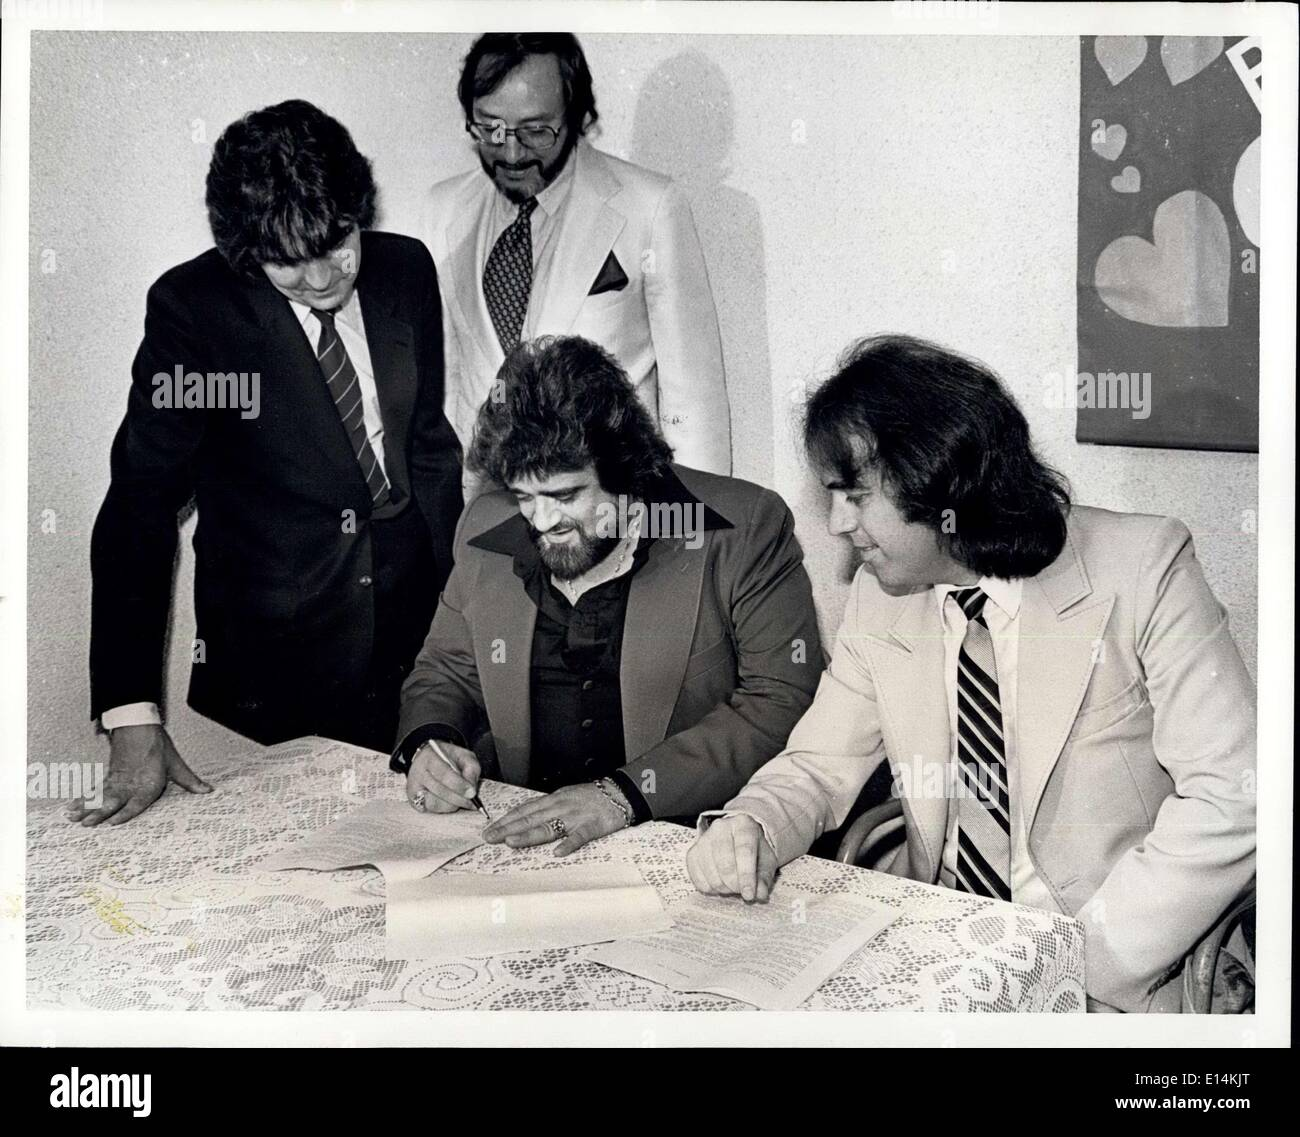 Apr. 05, 2012 - New York Cit -- Sept. 3, 1981 -- Disc Jockey Wolman Jack: New York City - Sept. 3, 1981 - Disc Jockey Wolfman Jack, and ''Radio Carolline'' principal Paul Collins sign with ''Major Market Radio sales''. The company will act as advertising sales agent for the Radio Caroline pirate broadcasting station to be locate on the ship ''Imagine'' in the North Sea. Looking on at the signing are Don Acree, Wolfman's publicNew York Cit -- Sept. 3, 1981 -- Disc Jockey Wolman Jack: New York City - Sept - Stock Image